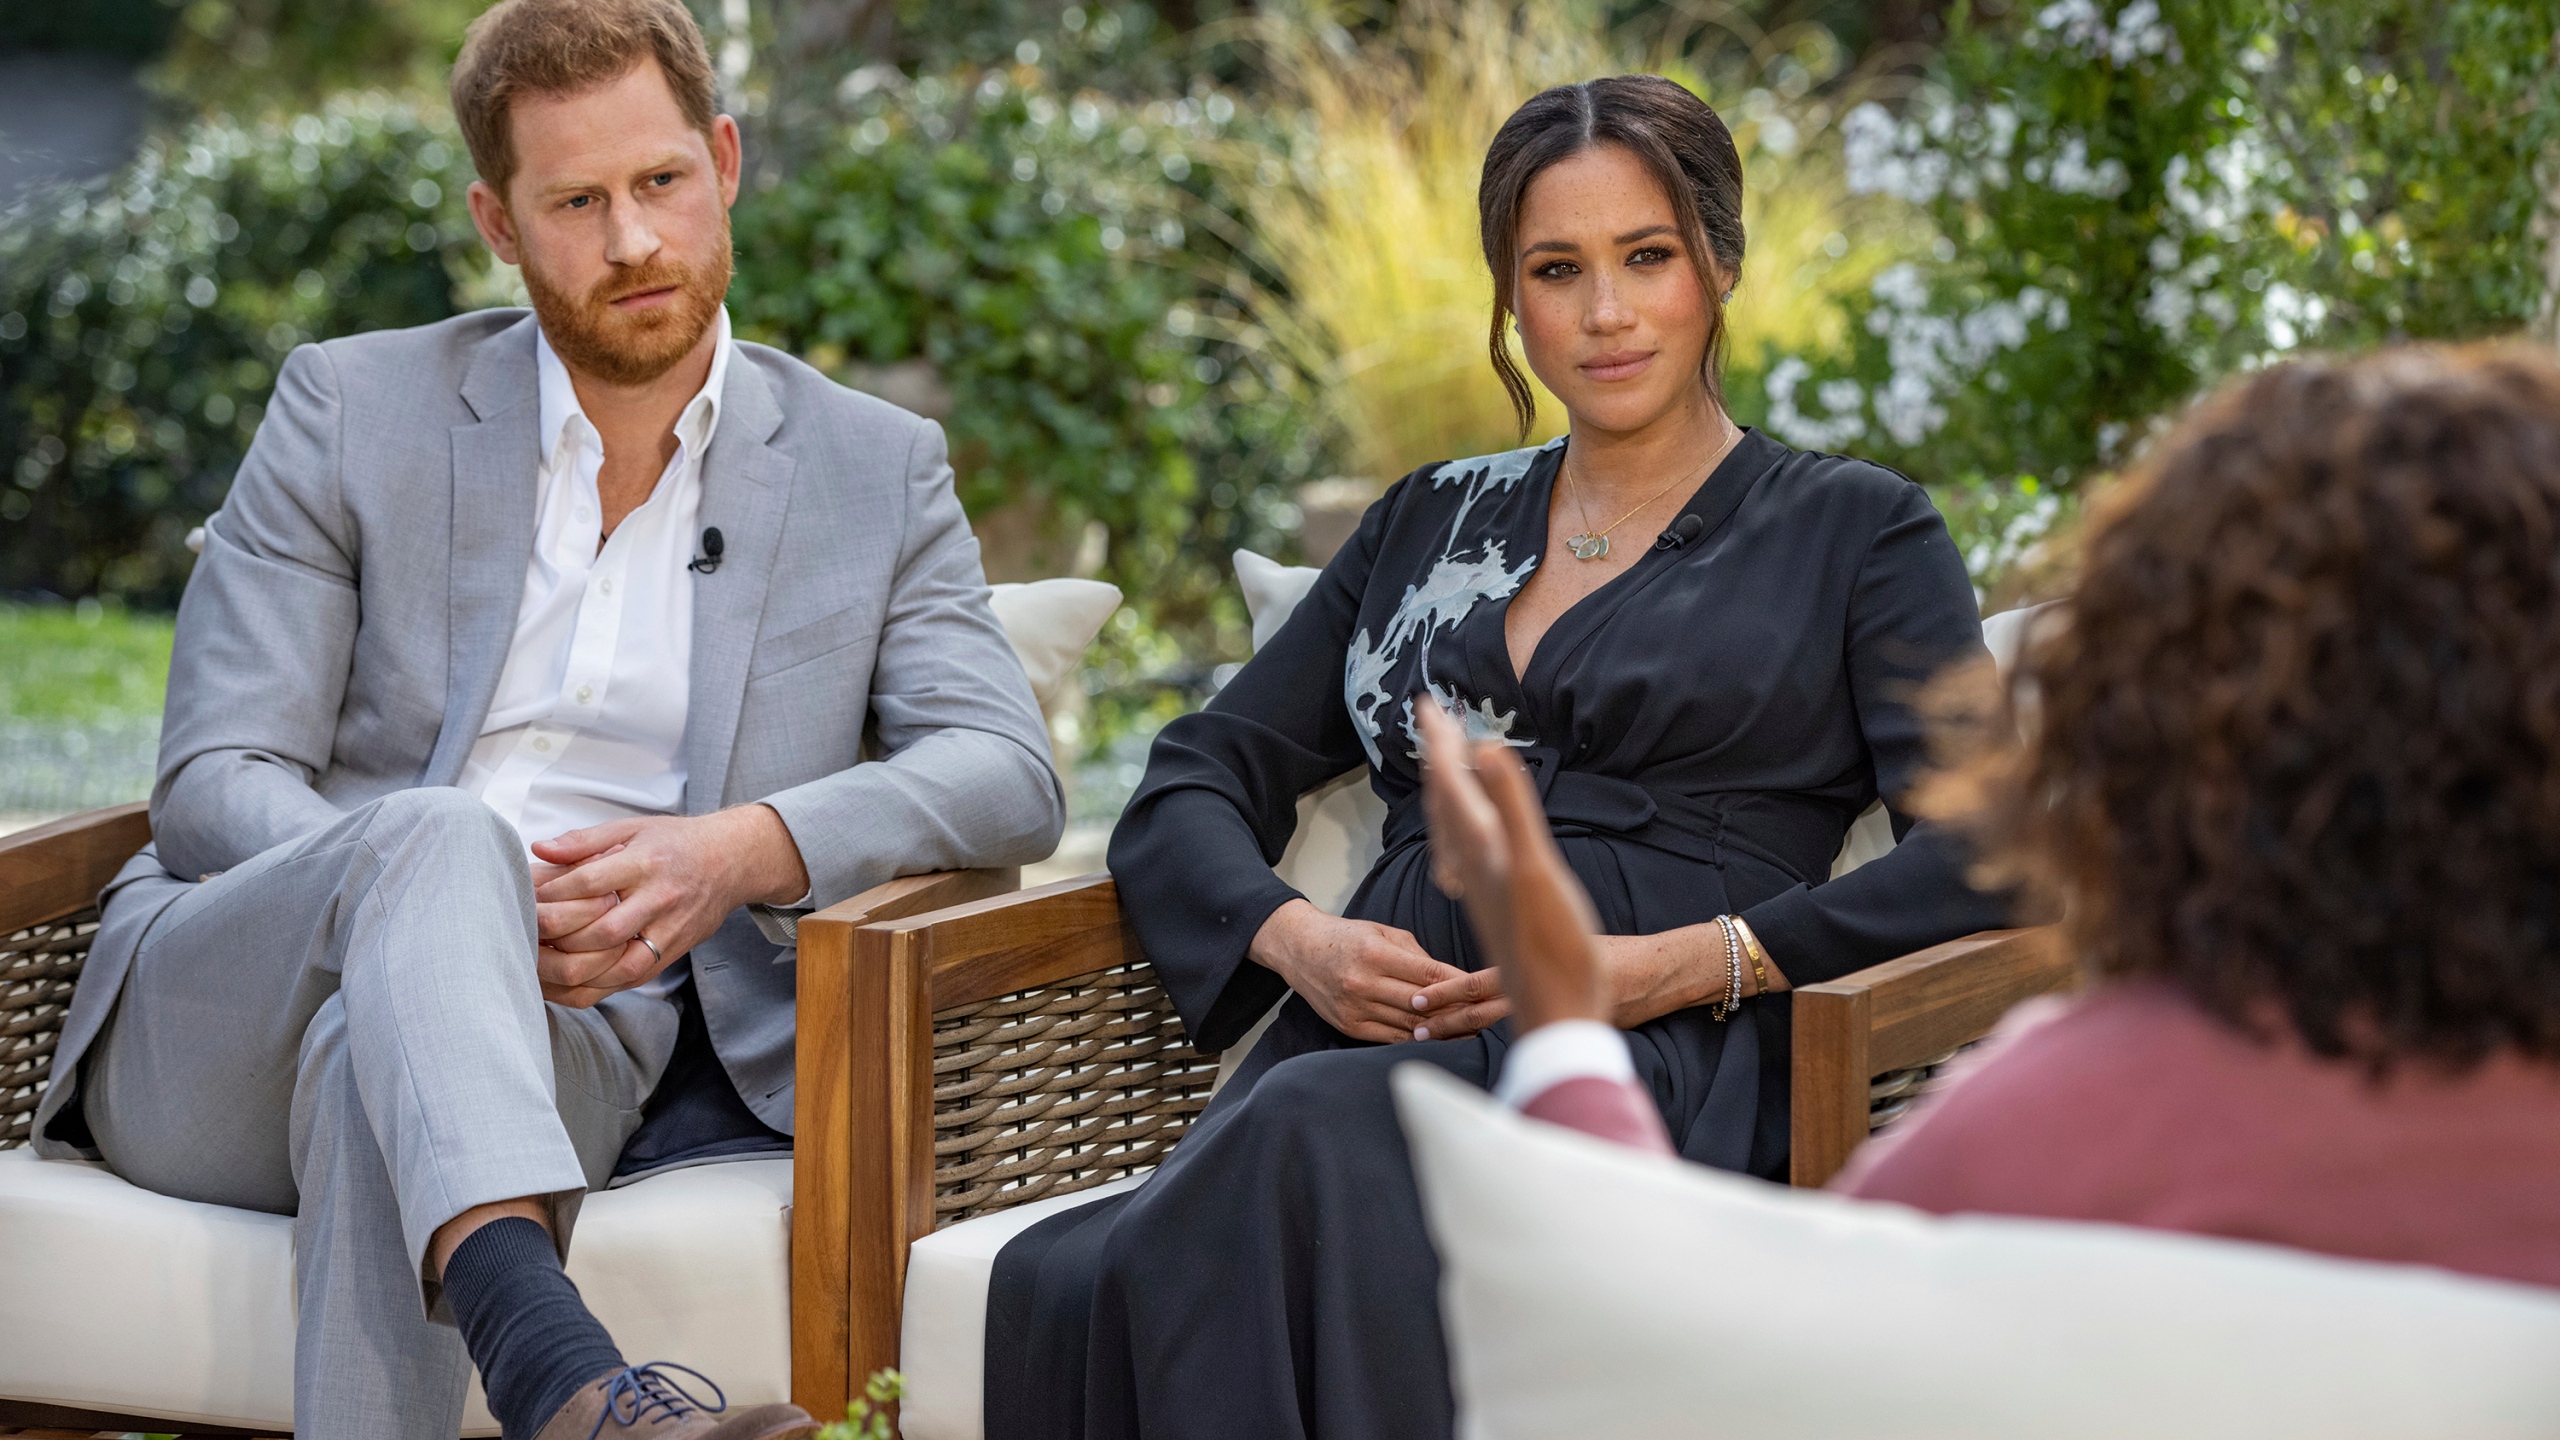 The Duke and Duchess of Sussex Open Up About Life in The Royal Family